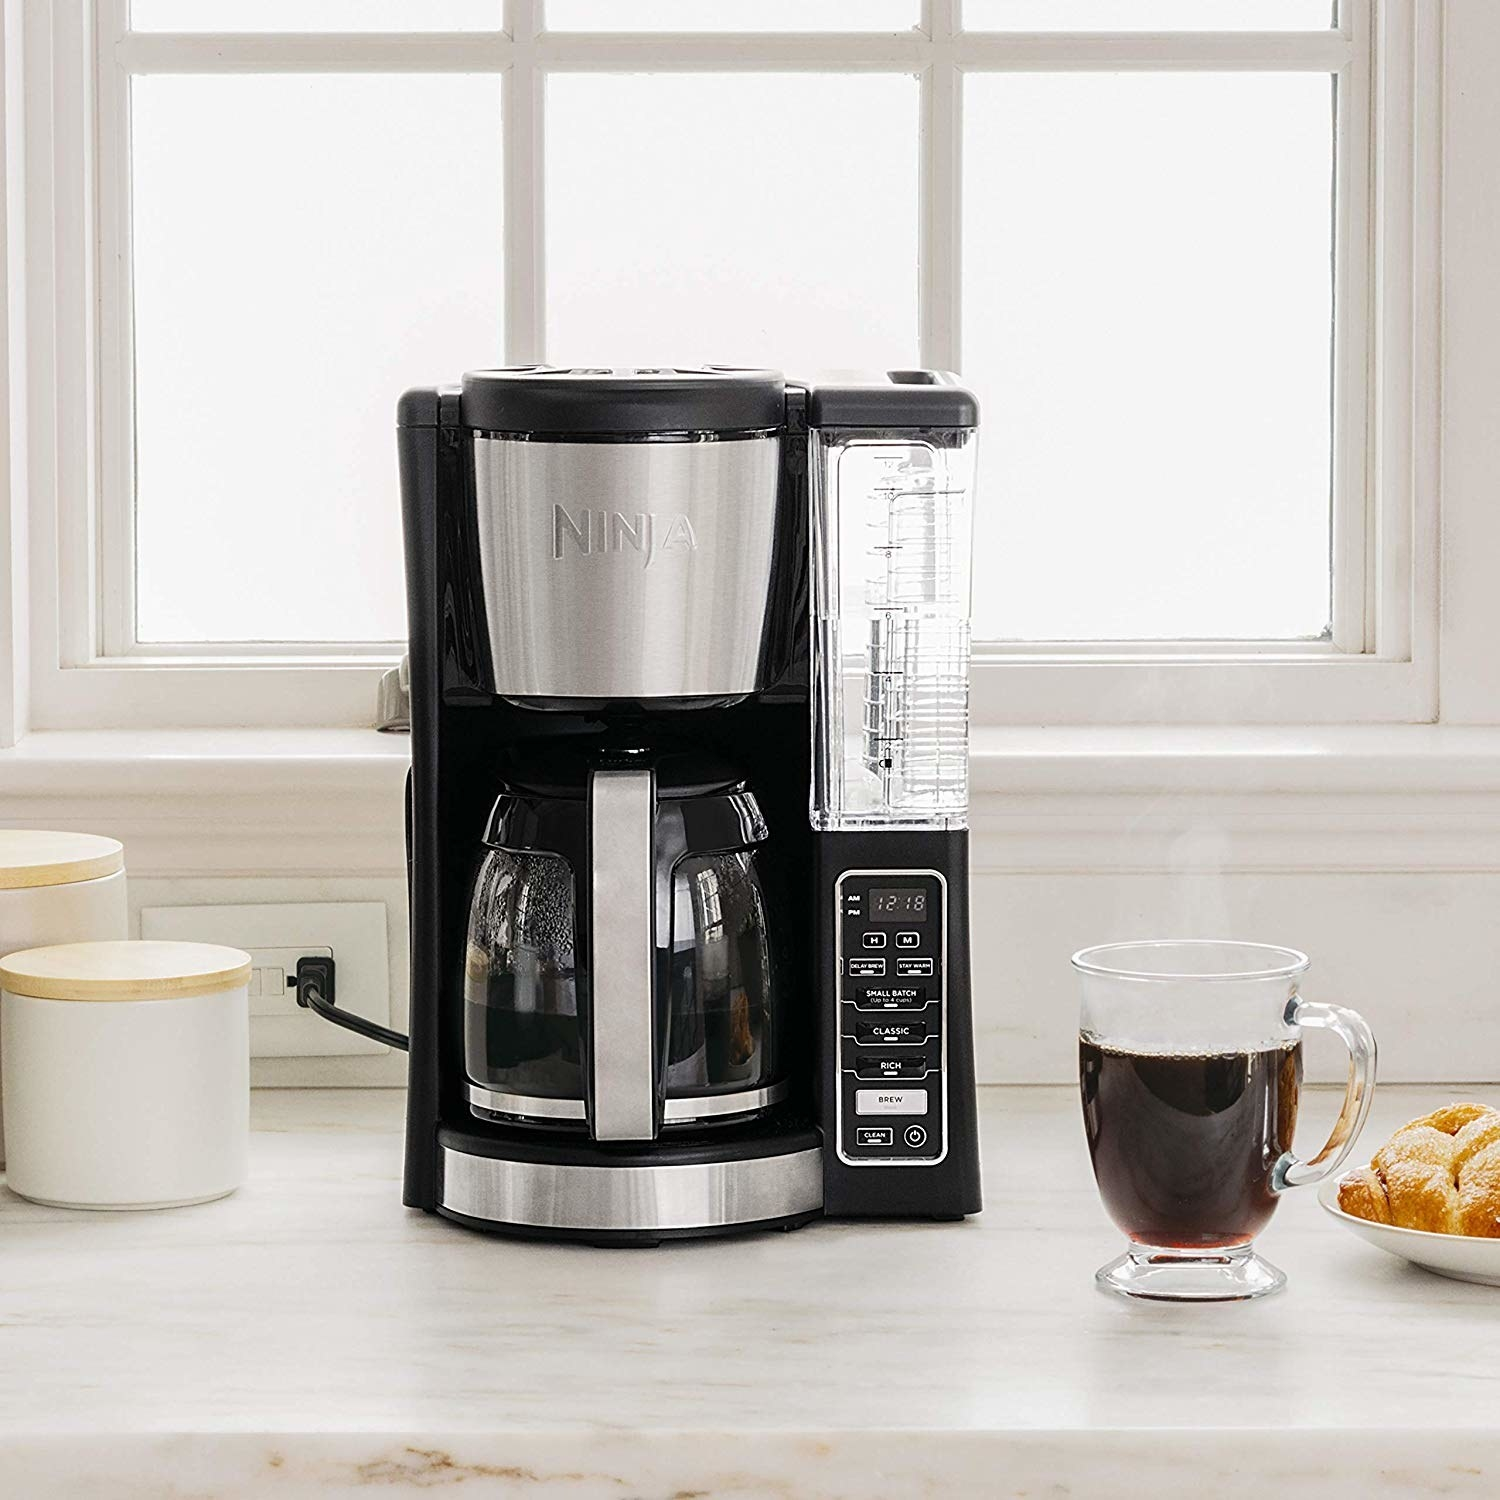 Ninja 12-Cup Programmable Coffee Maker